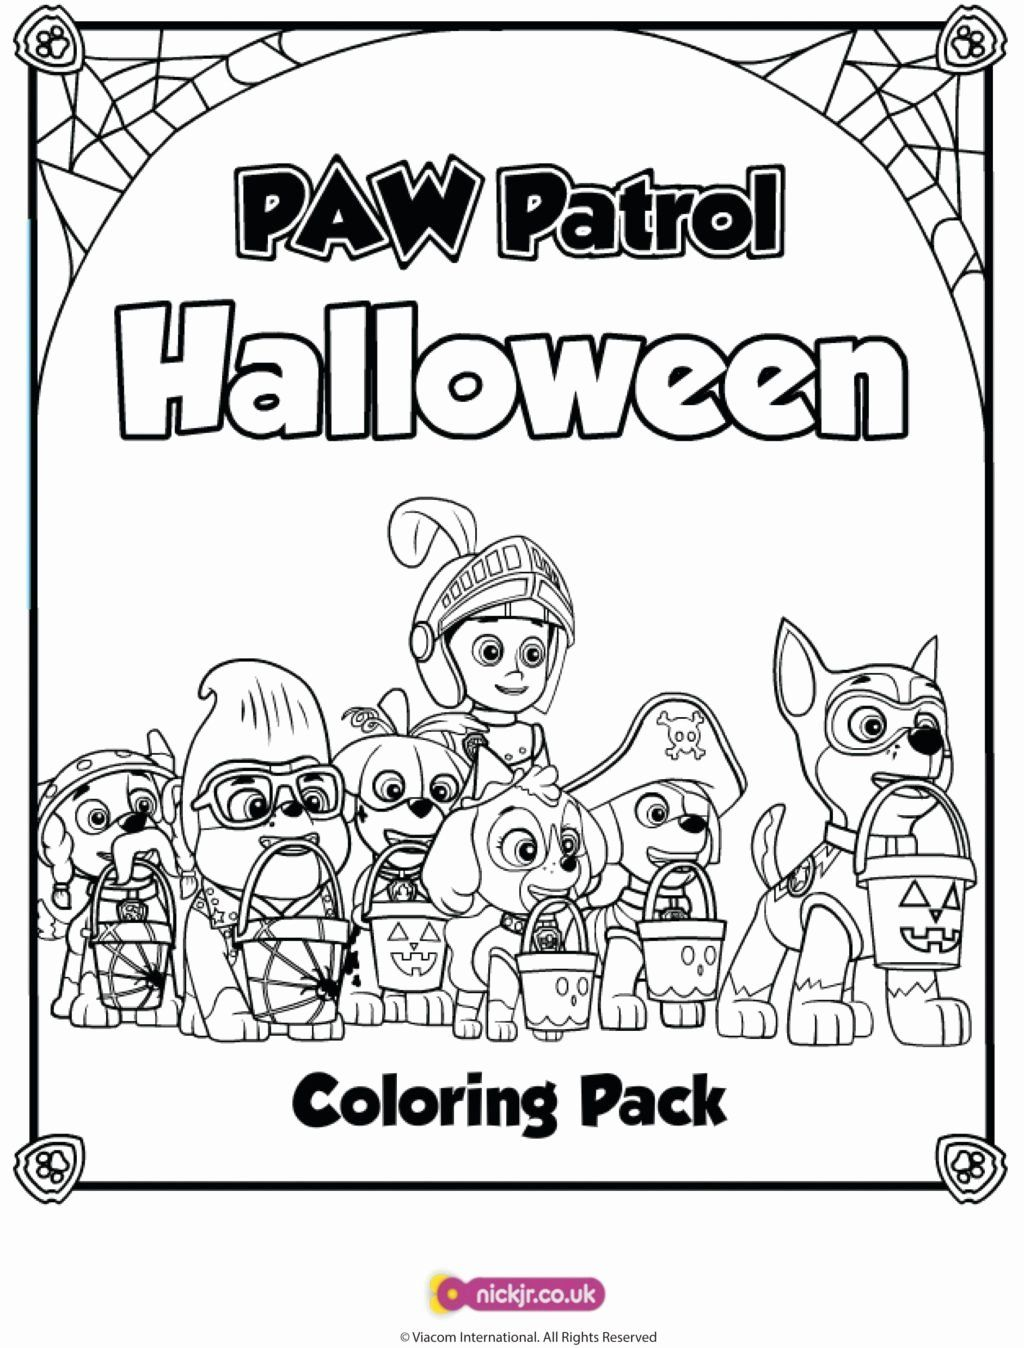 Hockey Coloring Activities Unique Coloring Pages Halloween Coloring Books In Bulk In 2020 Paw Patrol Coloring Halloween Coloring Birthday Coloring Pages